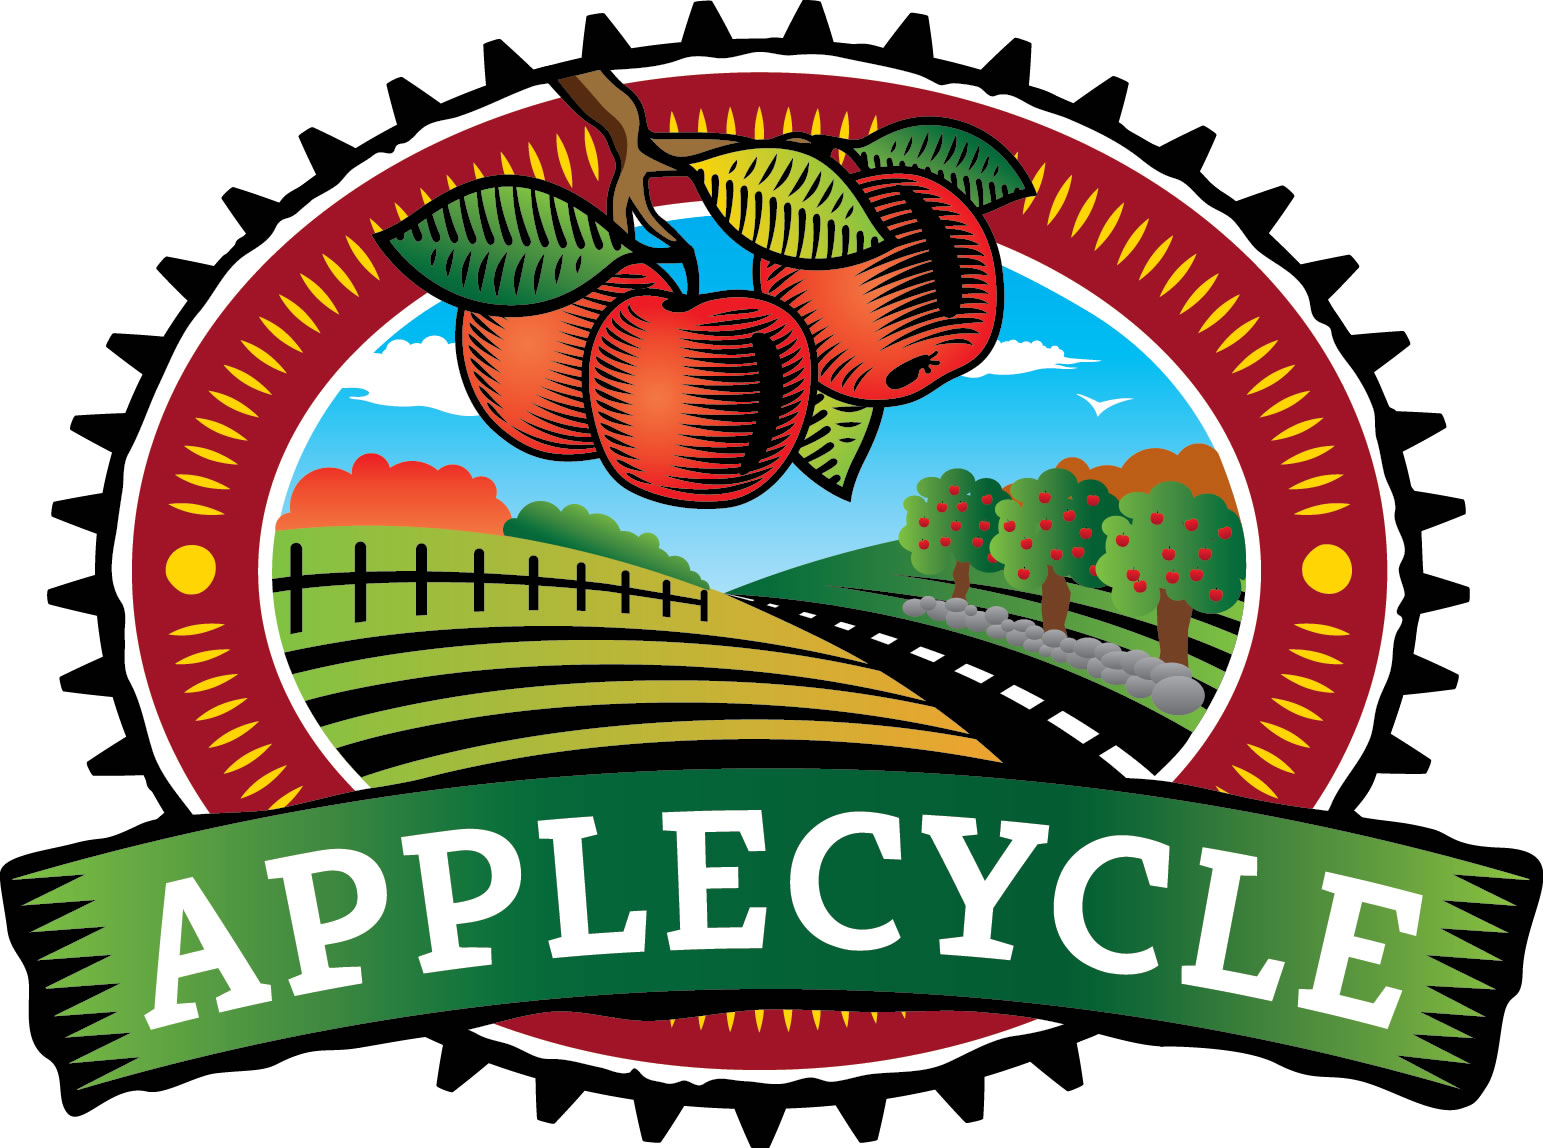 applecycle logo